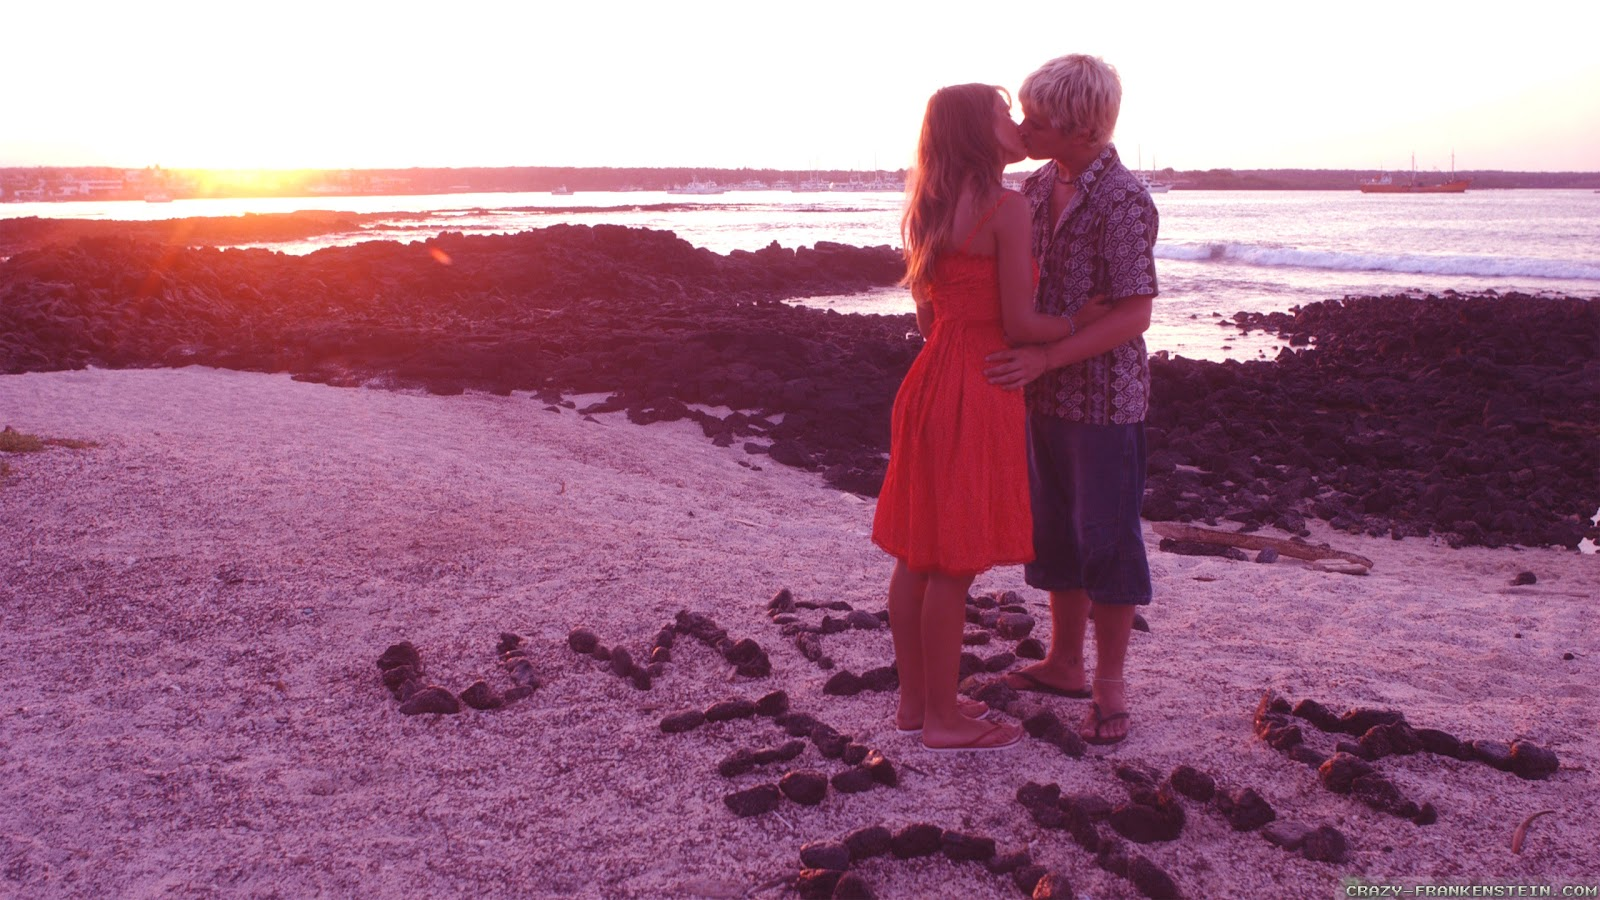 http://3.bp.blogspot.com/-3sW1LgbQz_w/T_himQ9_ibI/AAAAAAAAD48/TYqk6Z10f7c/s1600/on-beach-love-couple-wallpapers-2560x1440.jpg